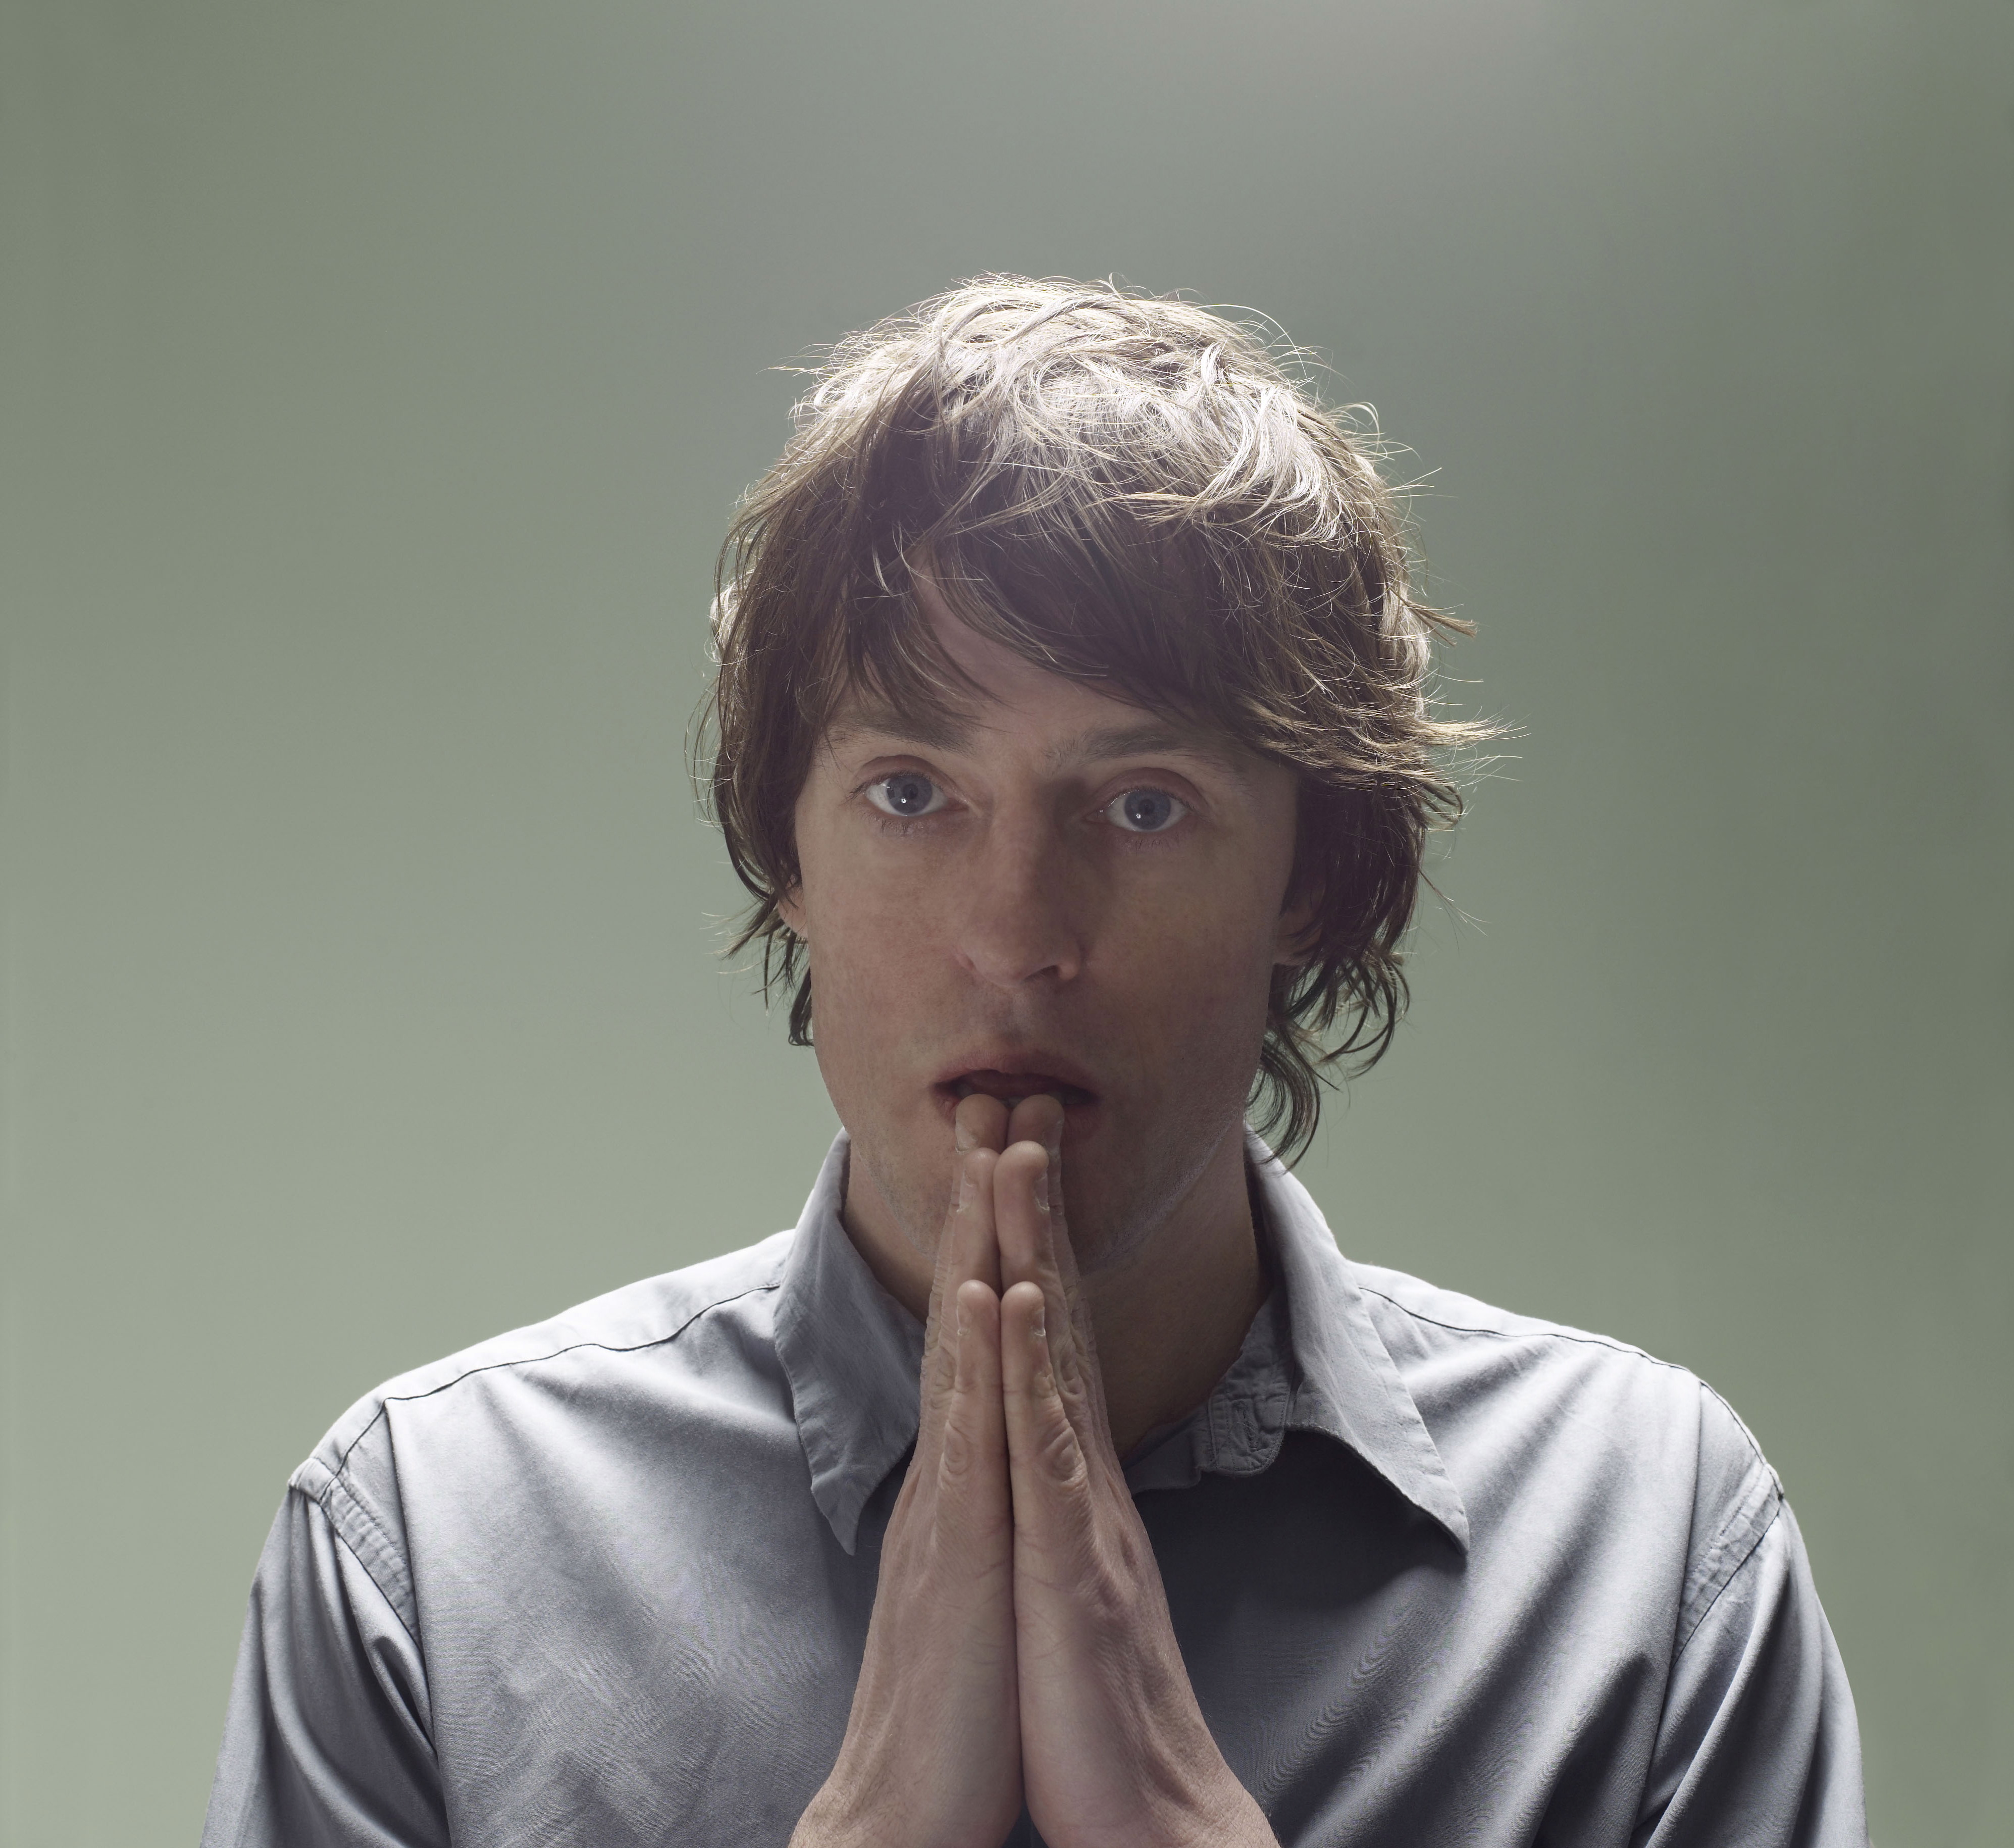 A founding member of Spacemen 3, Jason Pierce (pictured) has pushed the band's atmospheric, spacey concepts even further with Spiritualized.